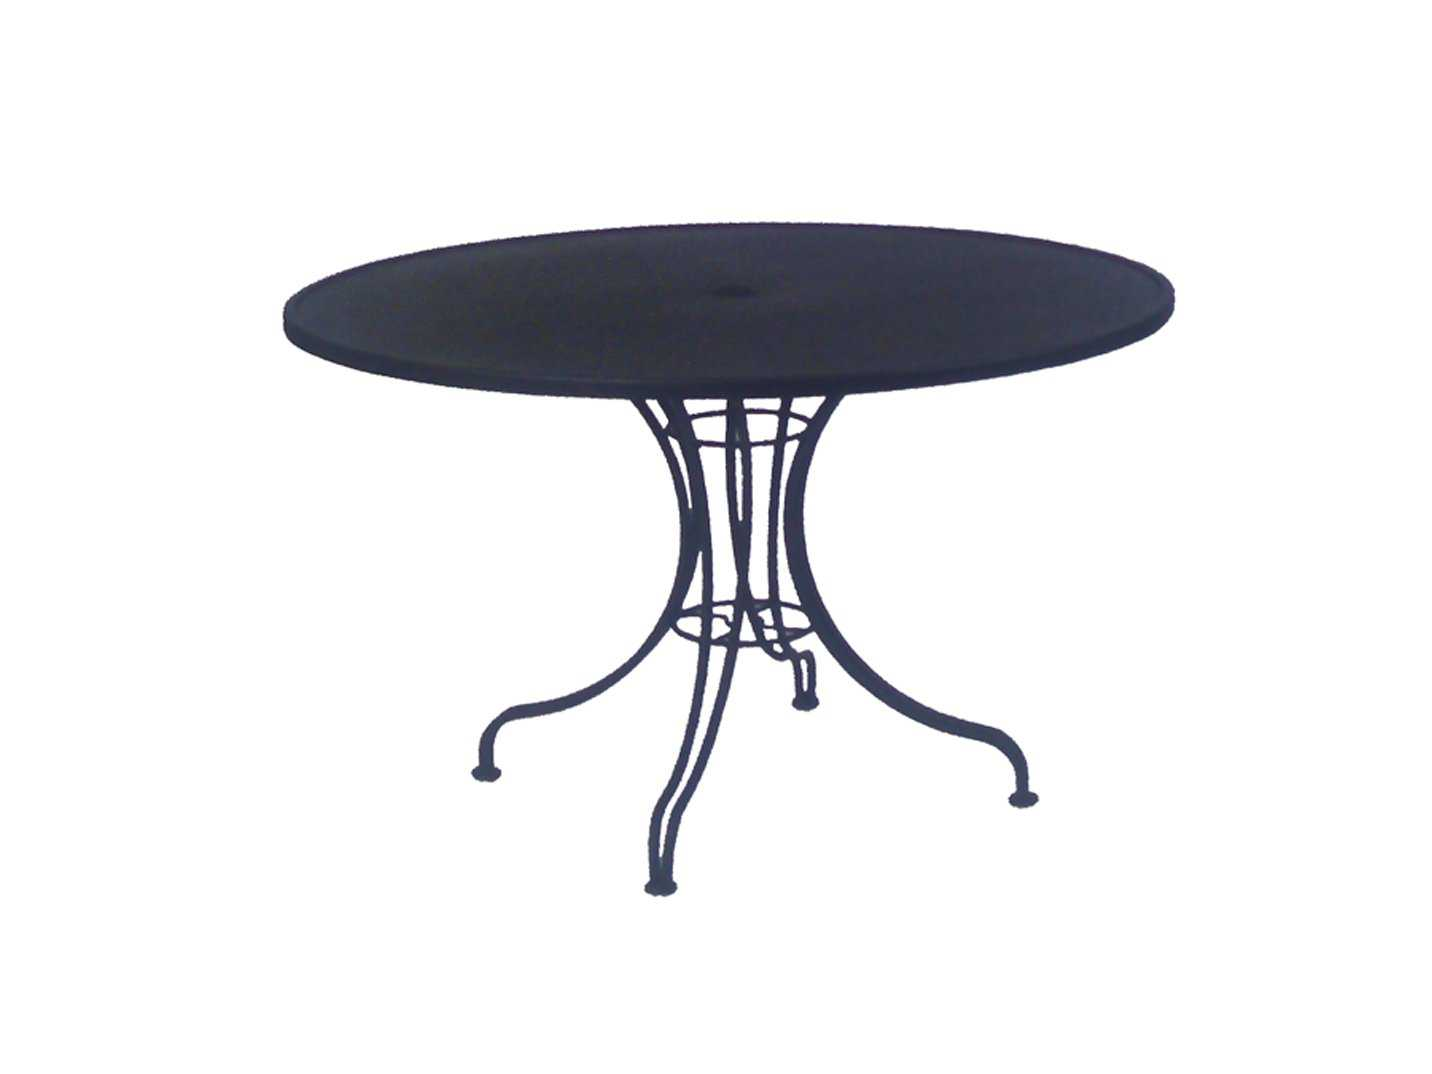 woodard wrought iron 42 round patio bistro table with umbrella hole 13l4ru48. Black Bedroom Furniture Sets. Home Design Ideas